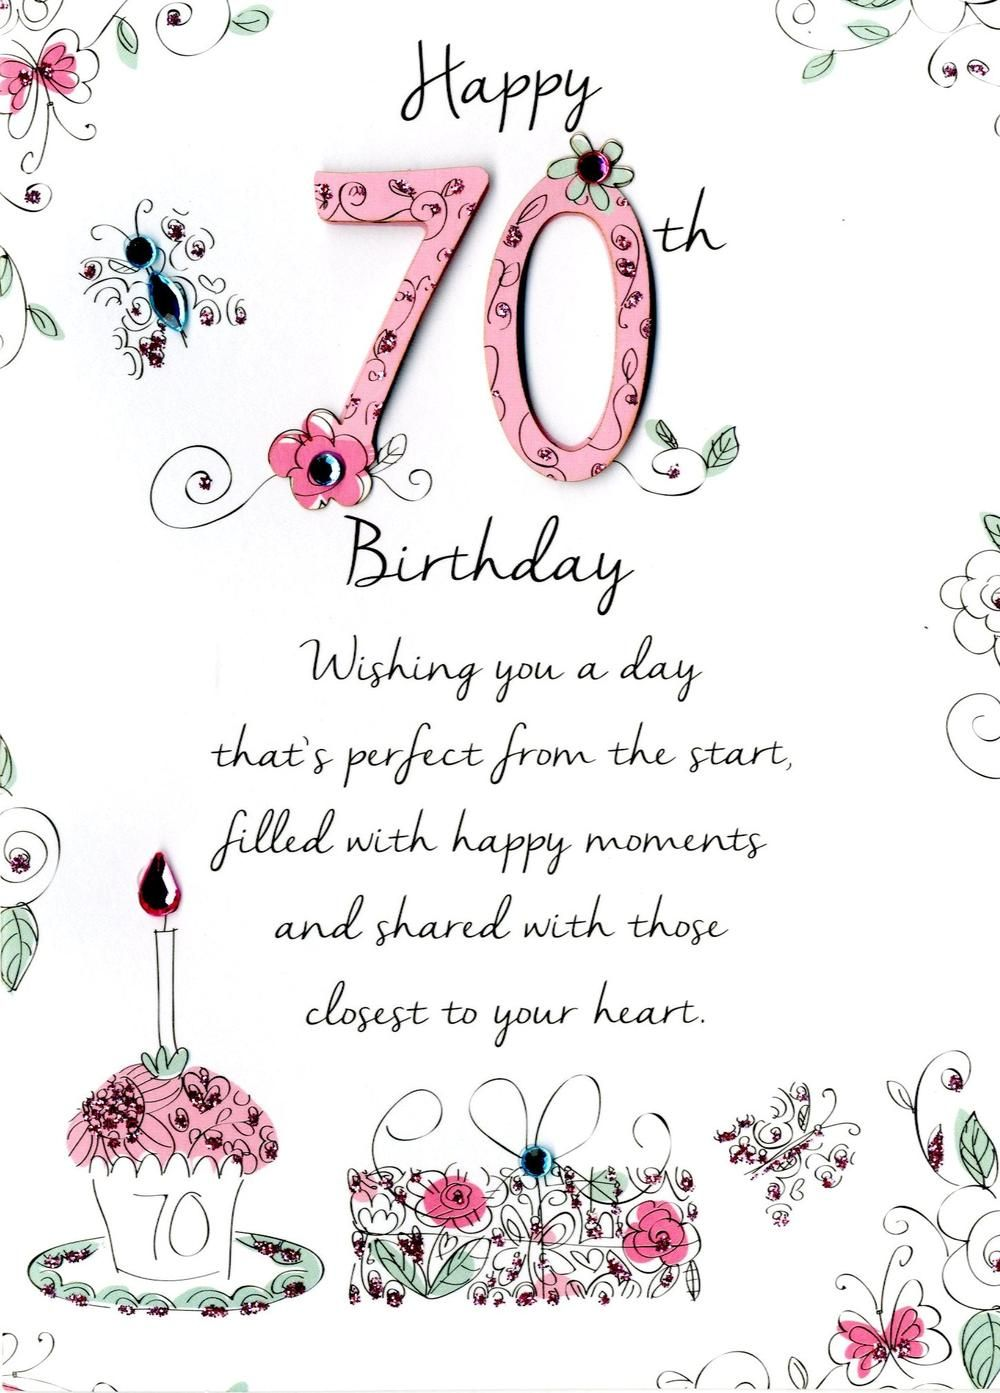 10 Awesome Card Verses For 70th Birthday In 2021 70th Birthday Card 70th Birthday Invitations Happy 70 Birthday